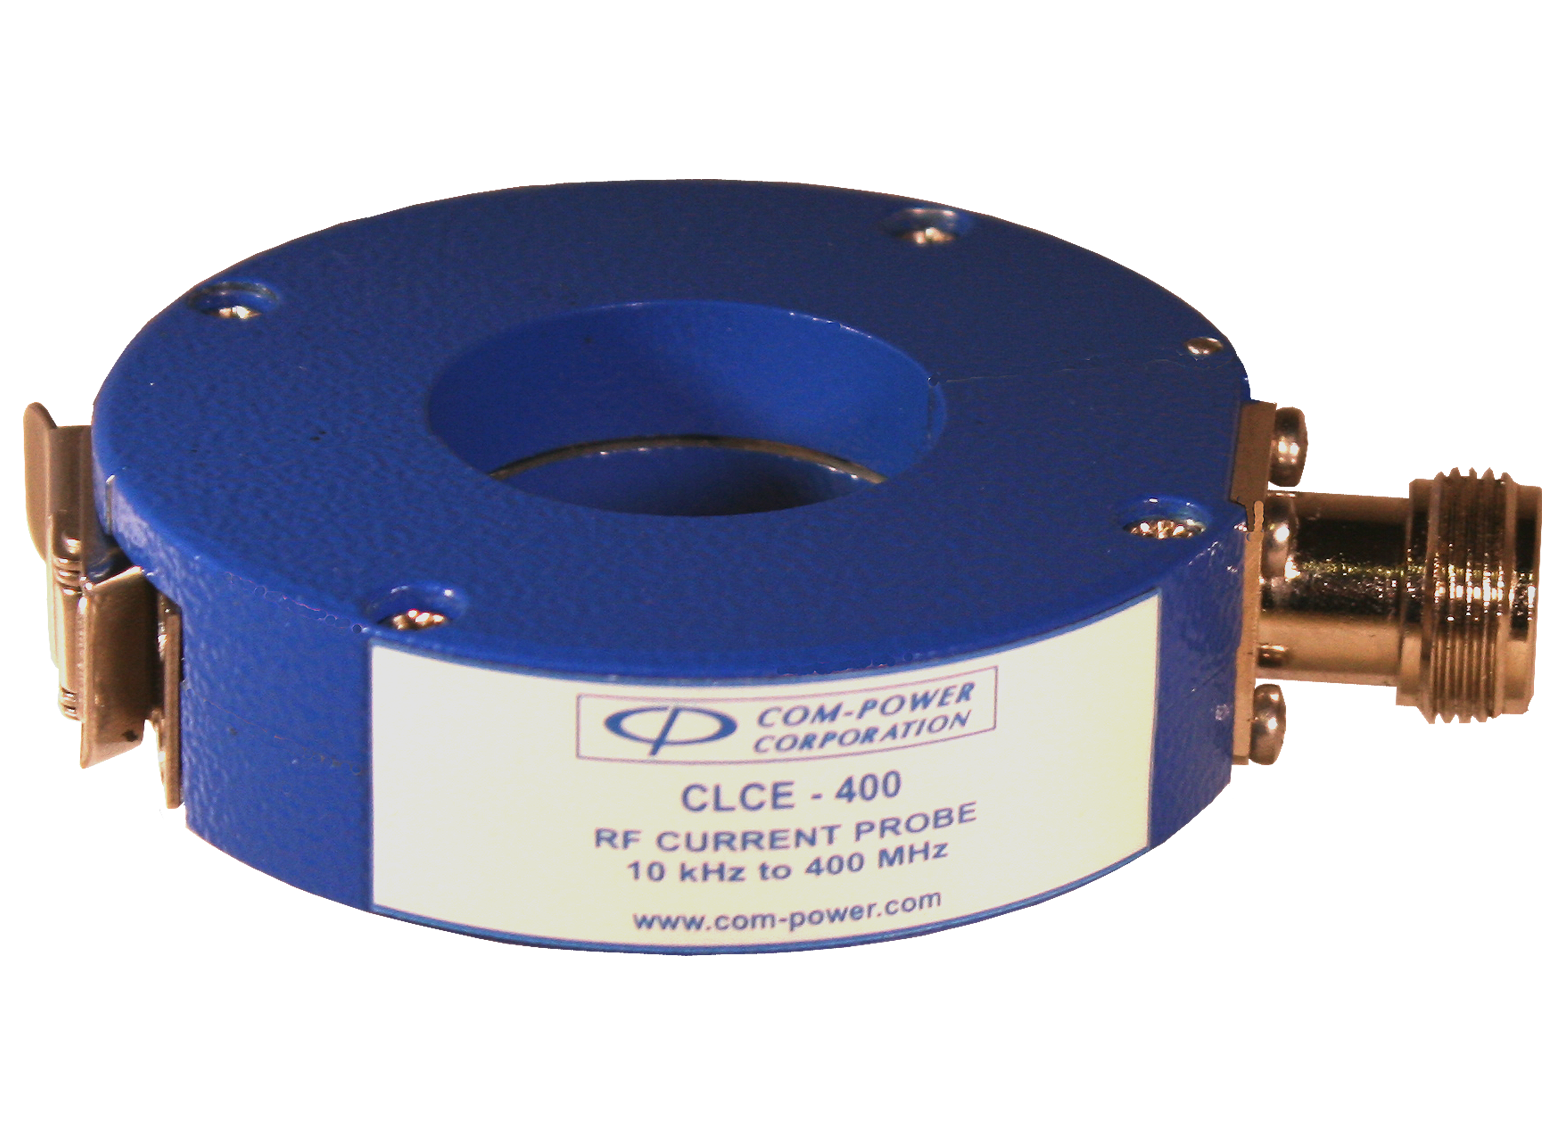 PMM CLCE-400 Current Probe for Emissions Measurement